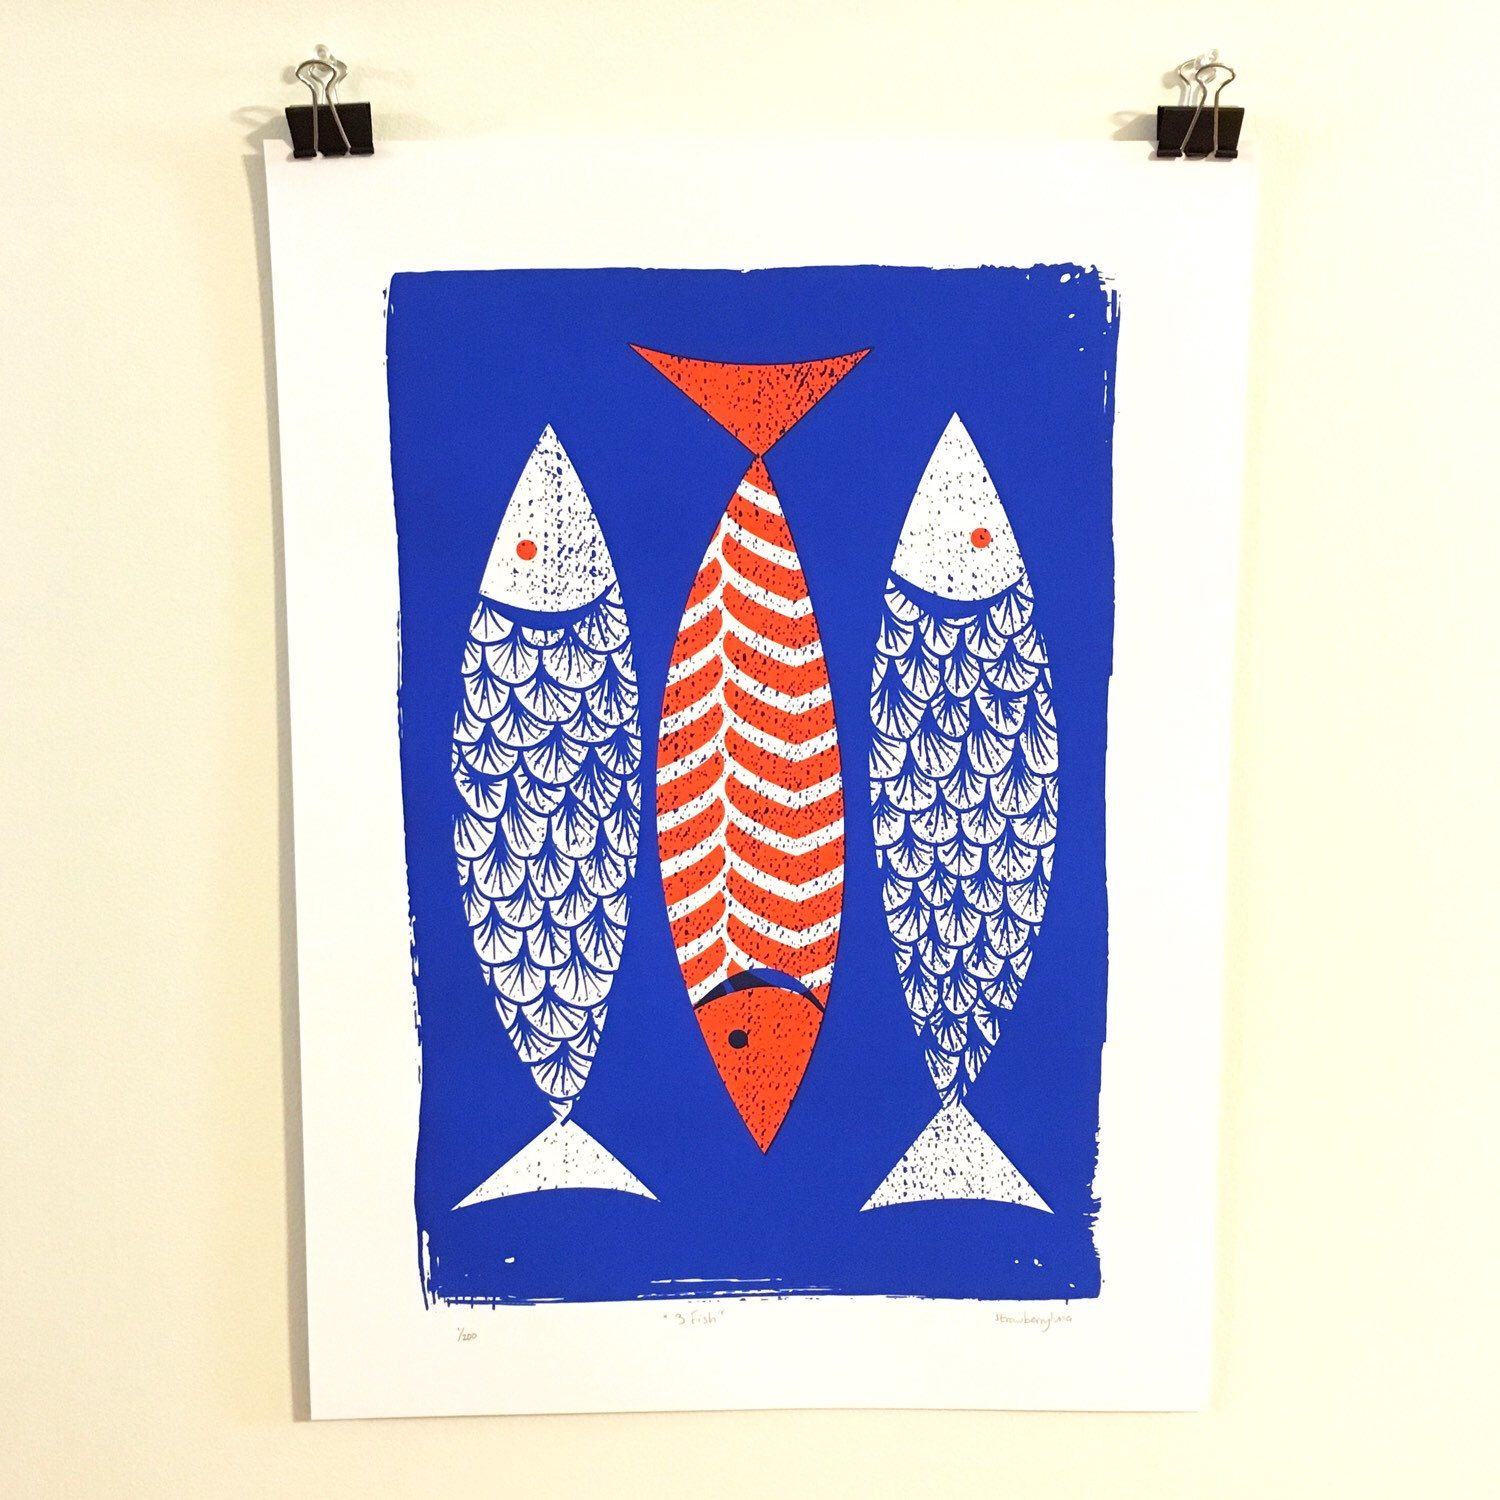 Just finished this new hand pulled silkscreen art print